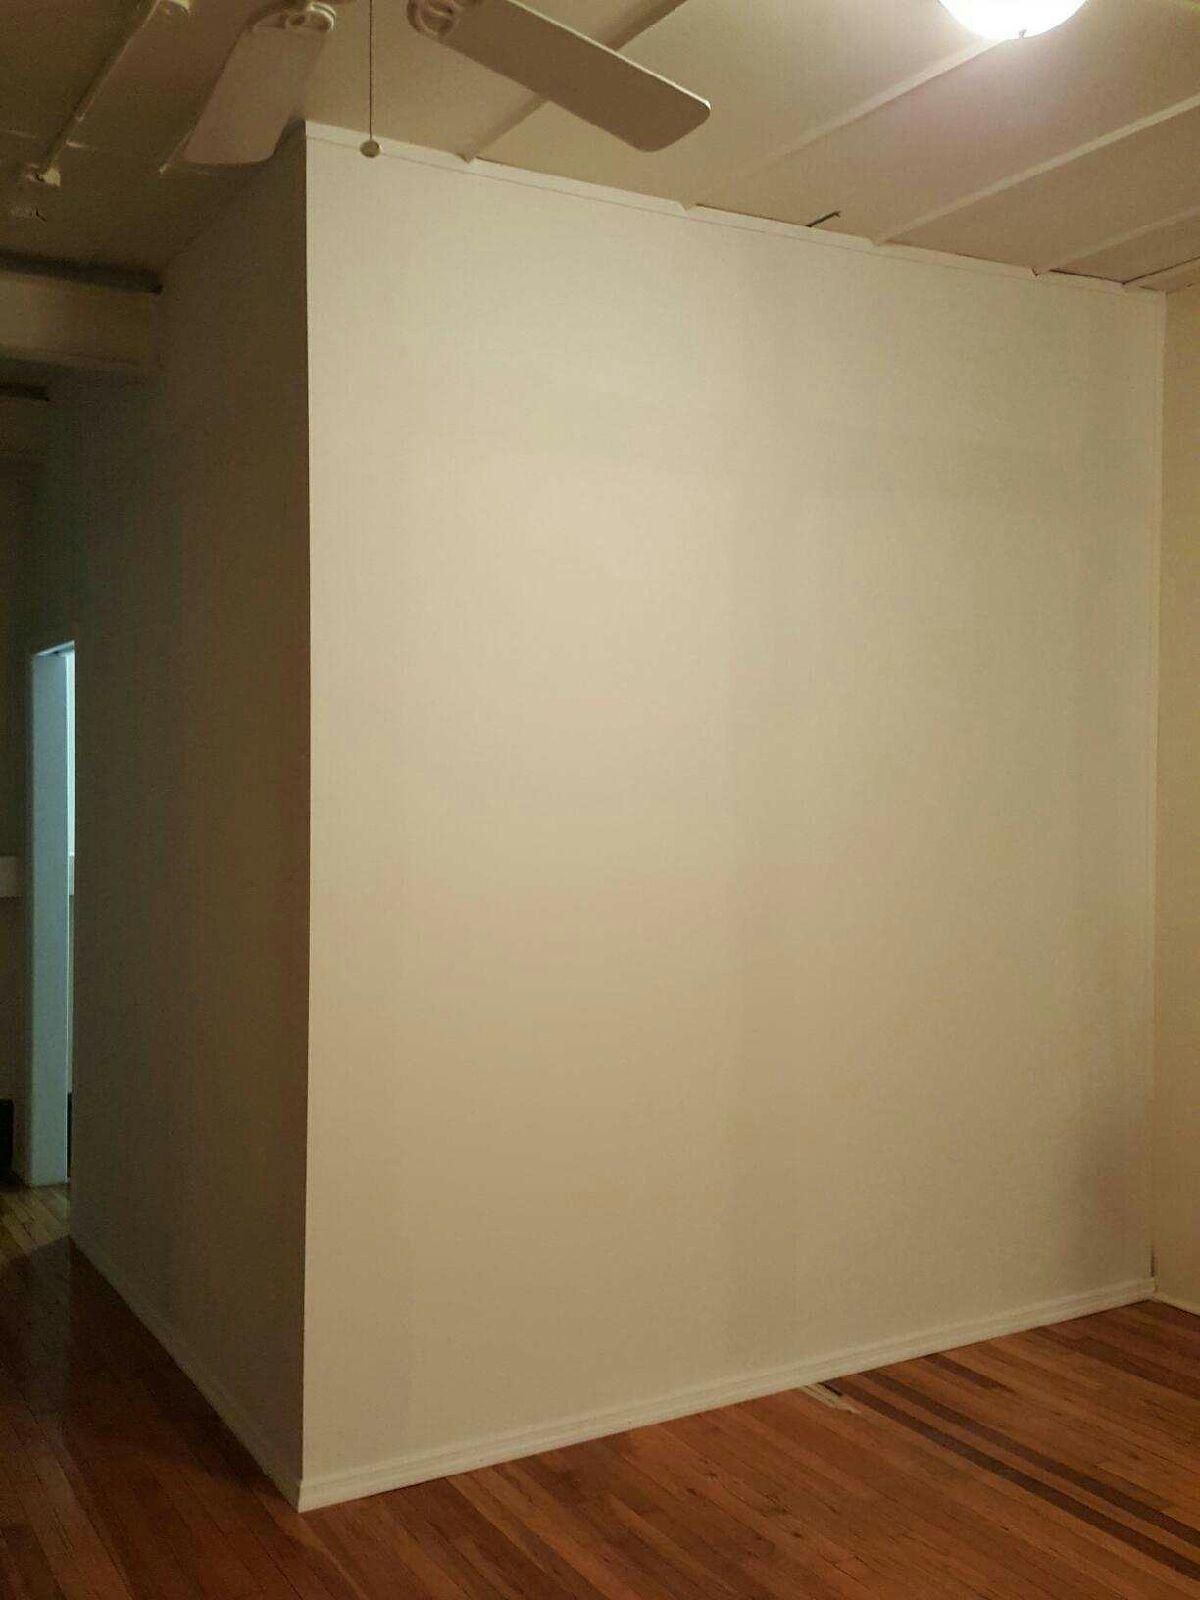 Seamless L Shape Temporary Wall Installation Call Us For All Your Custom Room Divider Inquiries 646 Temporary Wall Storage Solutions Diy Wall Installation